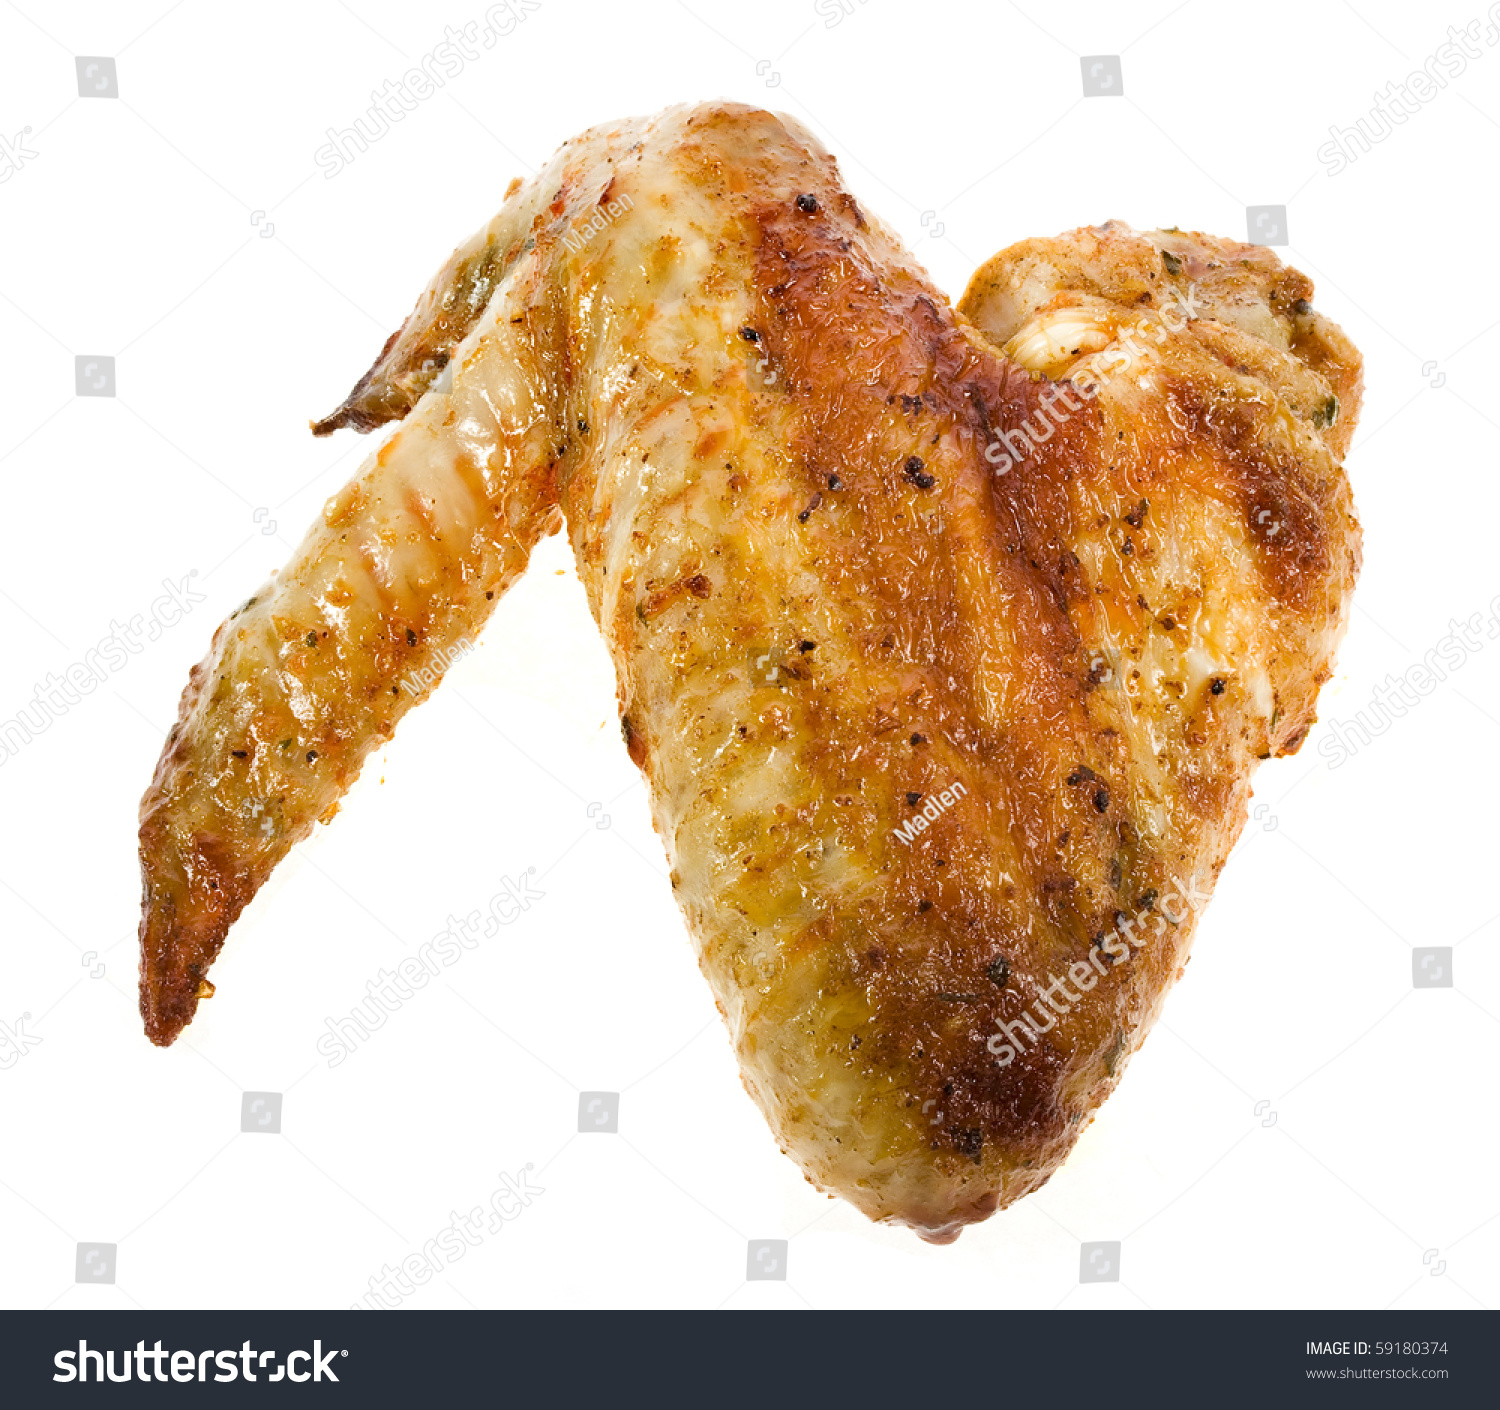 Fried Chicken Wings Cartoon Isolated chicken wings stock photos ...